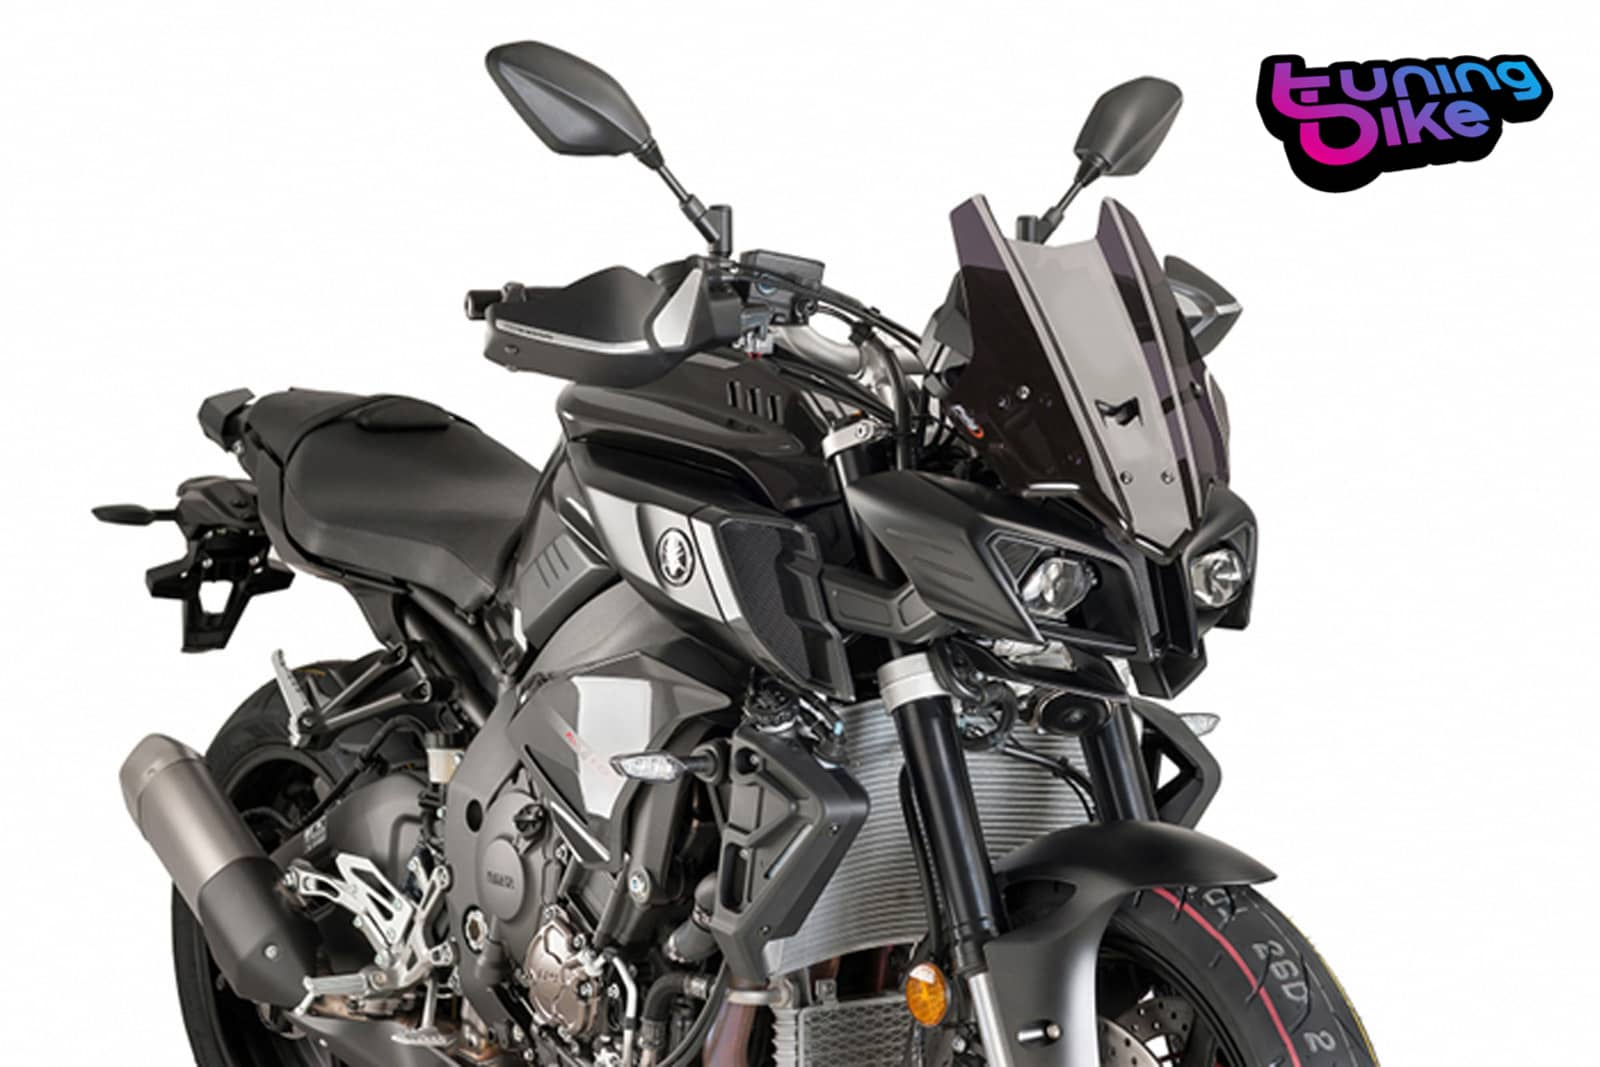 bulle racing puig yamaha mt 10 sp 2017 fume fonce ebay. Black Bedroom Furniture Sets. Home Design Ideas